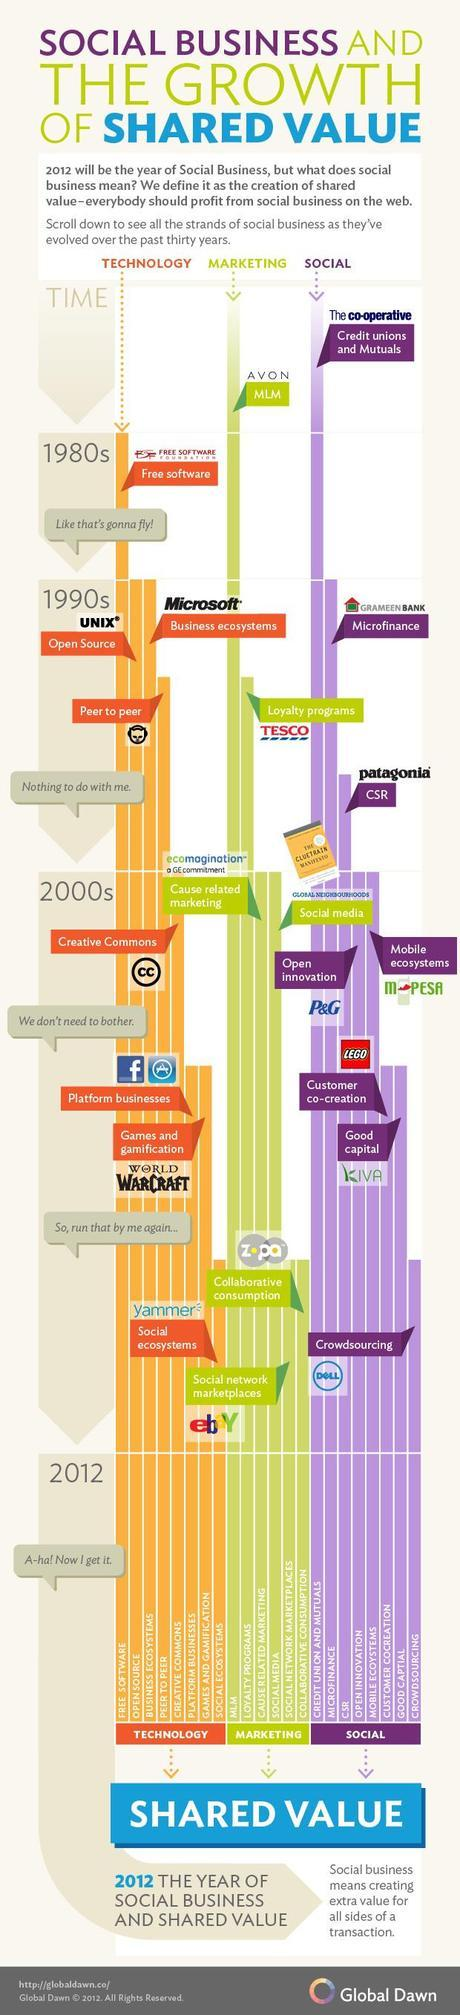 RIP Facebook – Social Business is Here [Infographic]